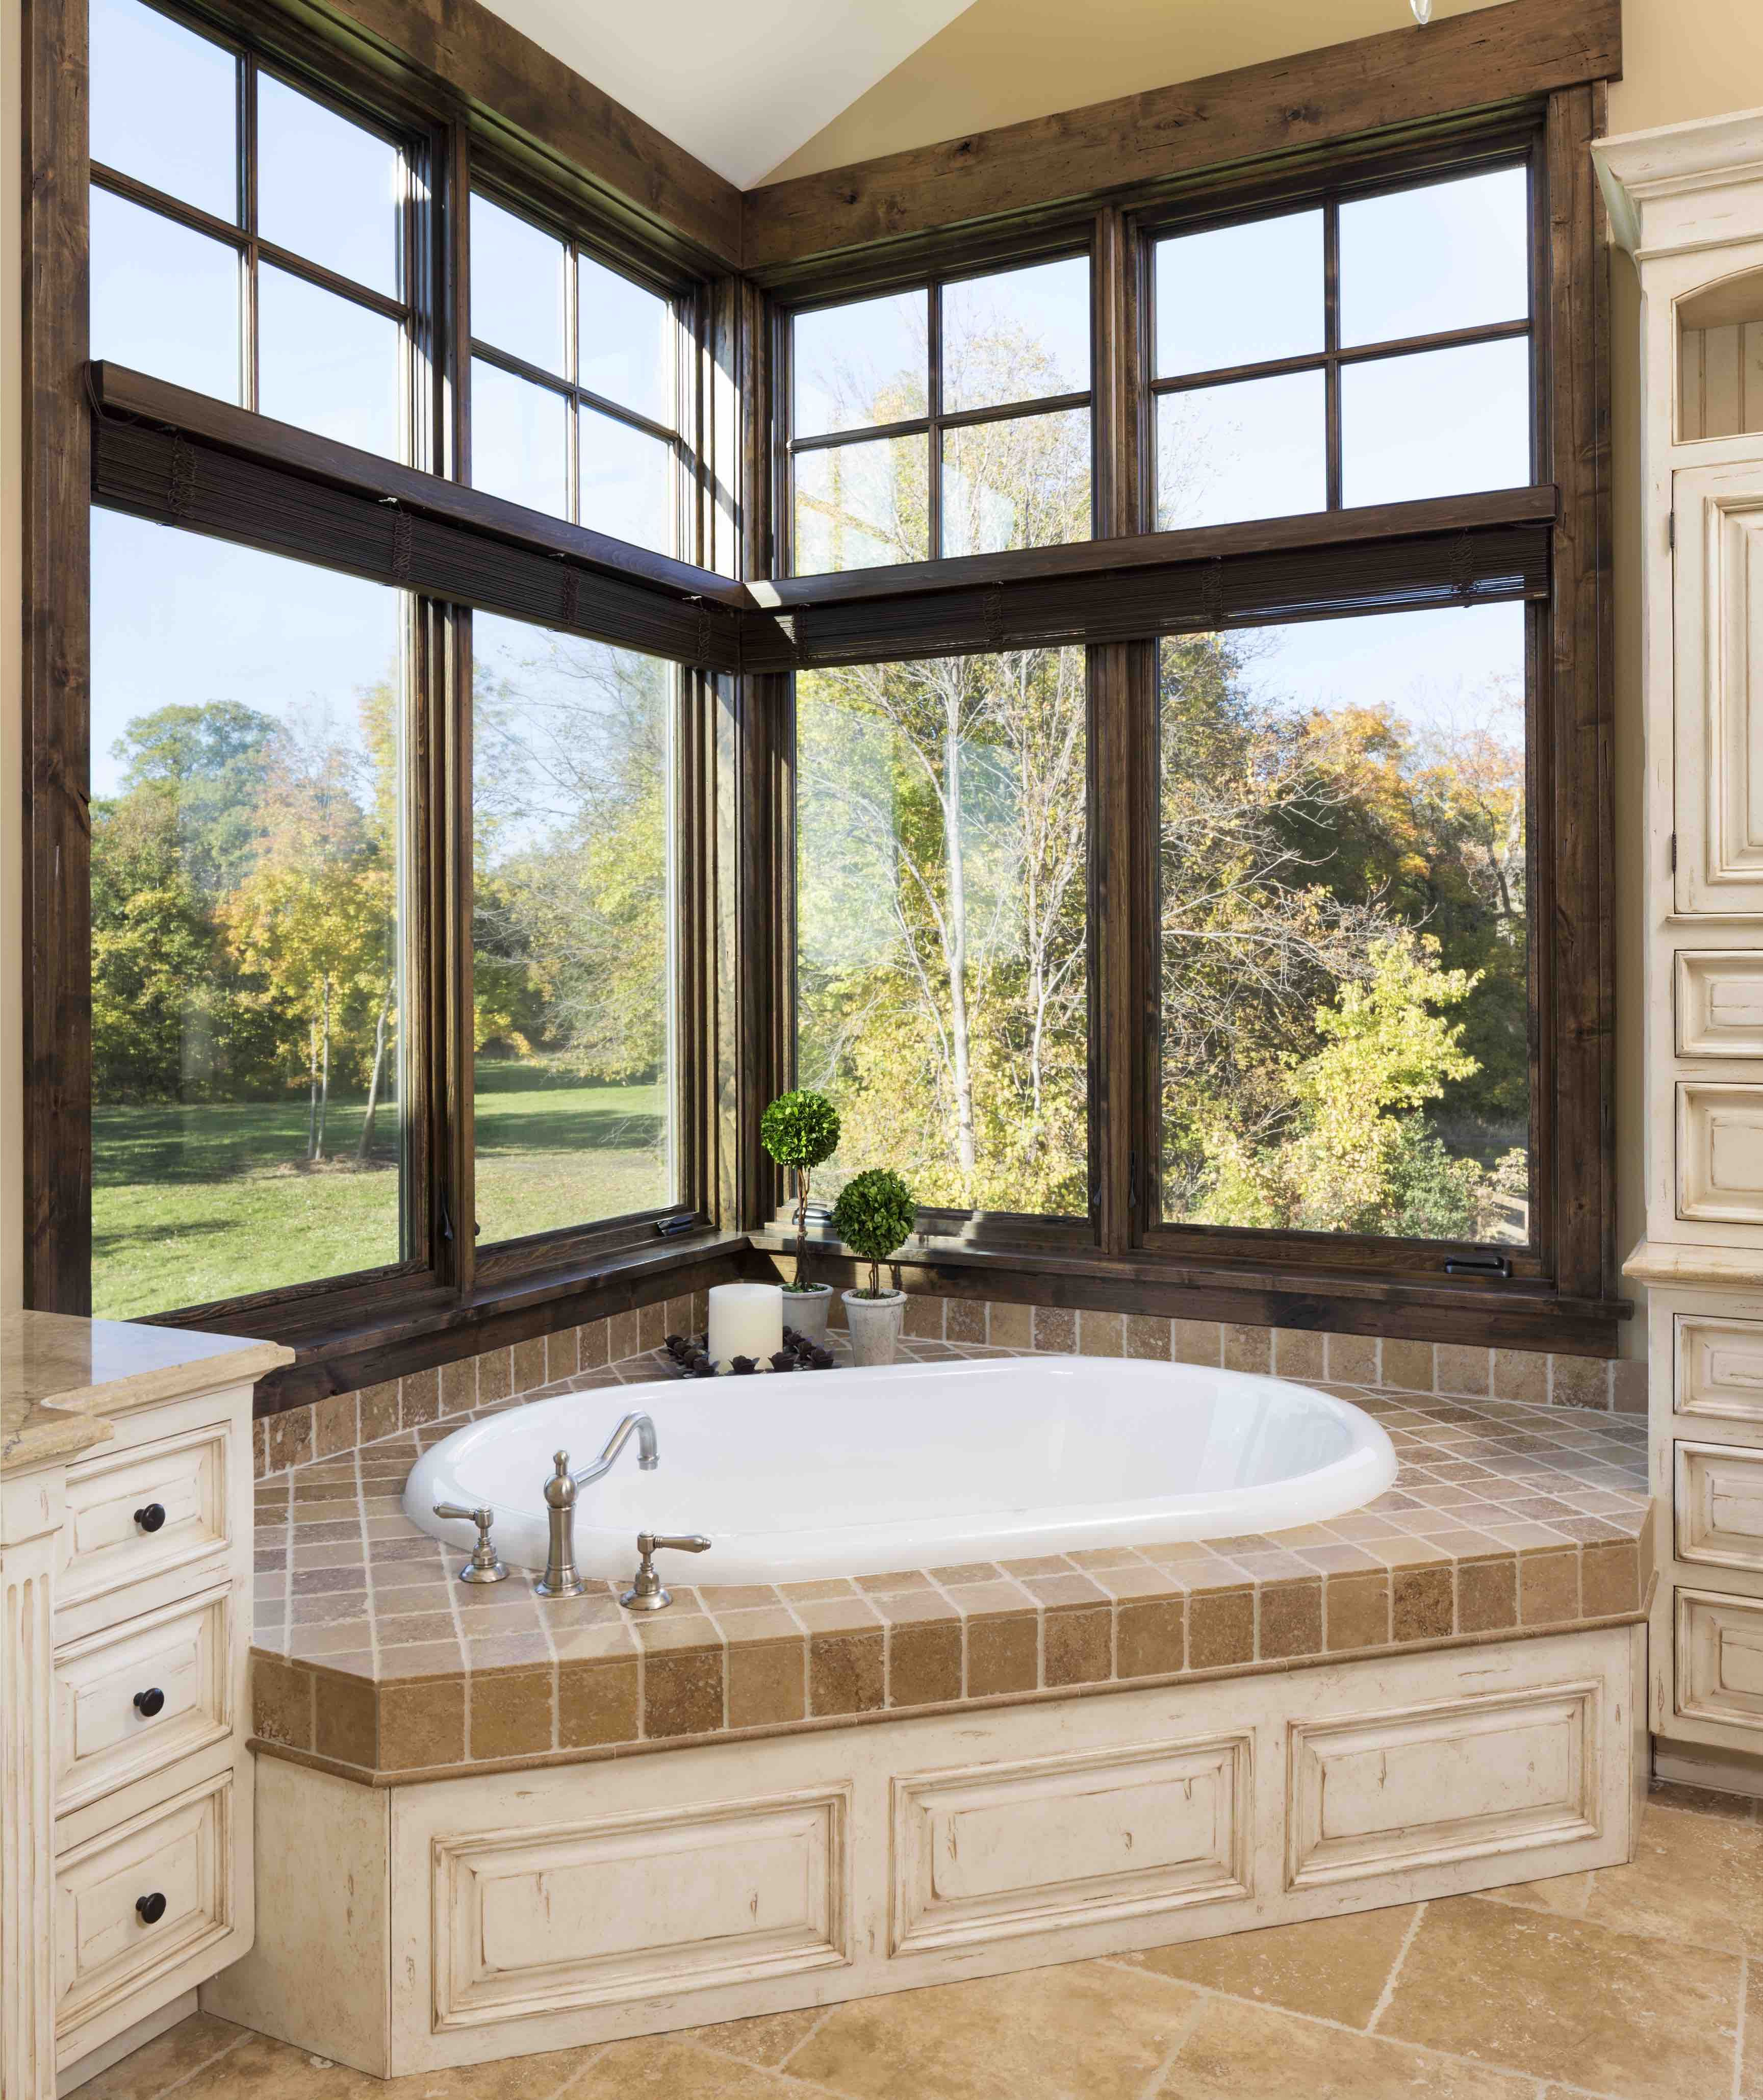 HISTORIC Studio Interior Design Minneapolis Luxury Home Bathroom Bath